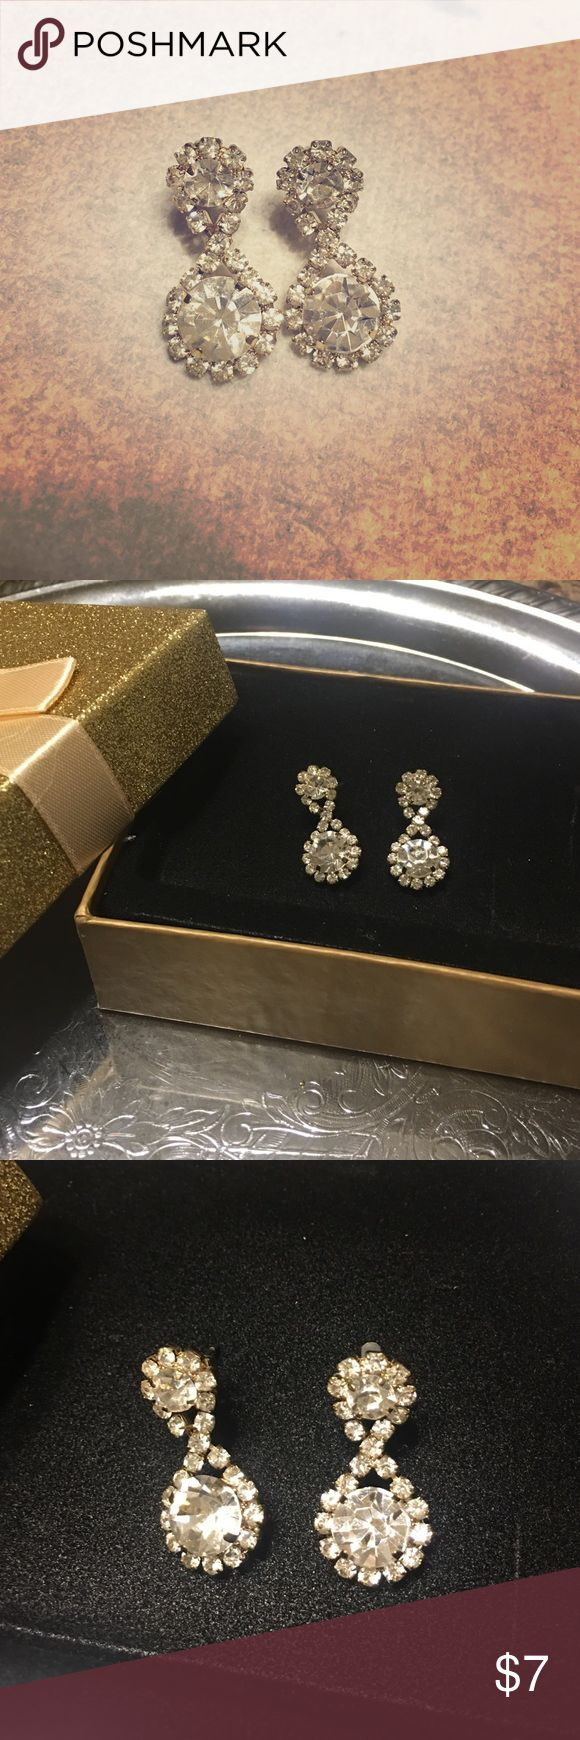 Charming Charlie Formal Gold Dangle Earrings Formal gold earrings with rhinestone and cubic zirconia accents Charming Charlie Jewelry Earrings